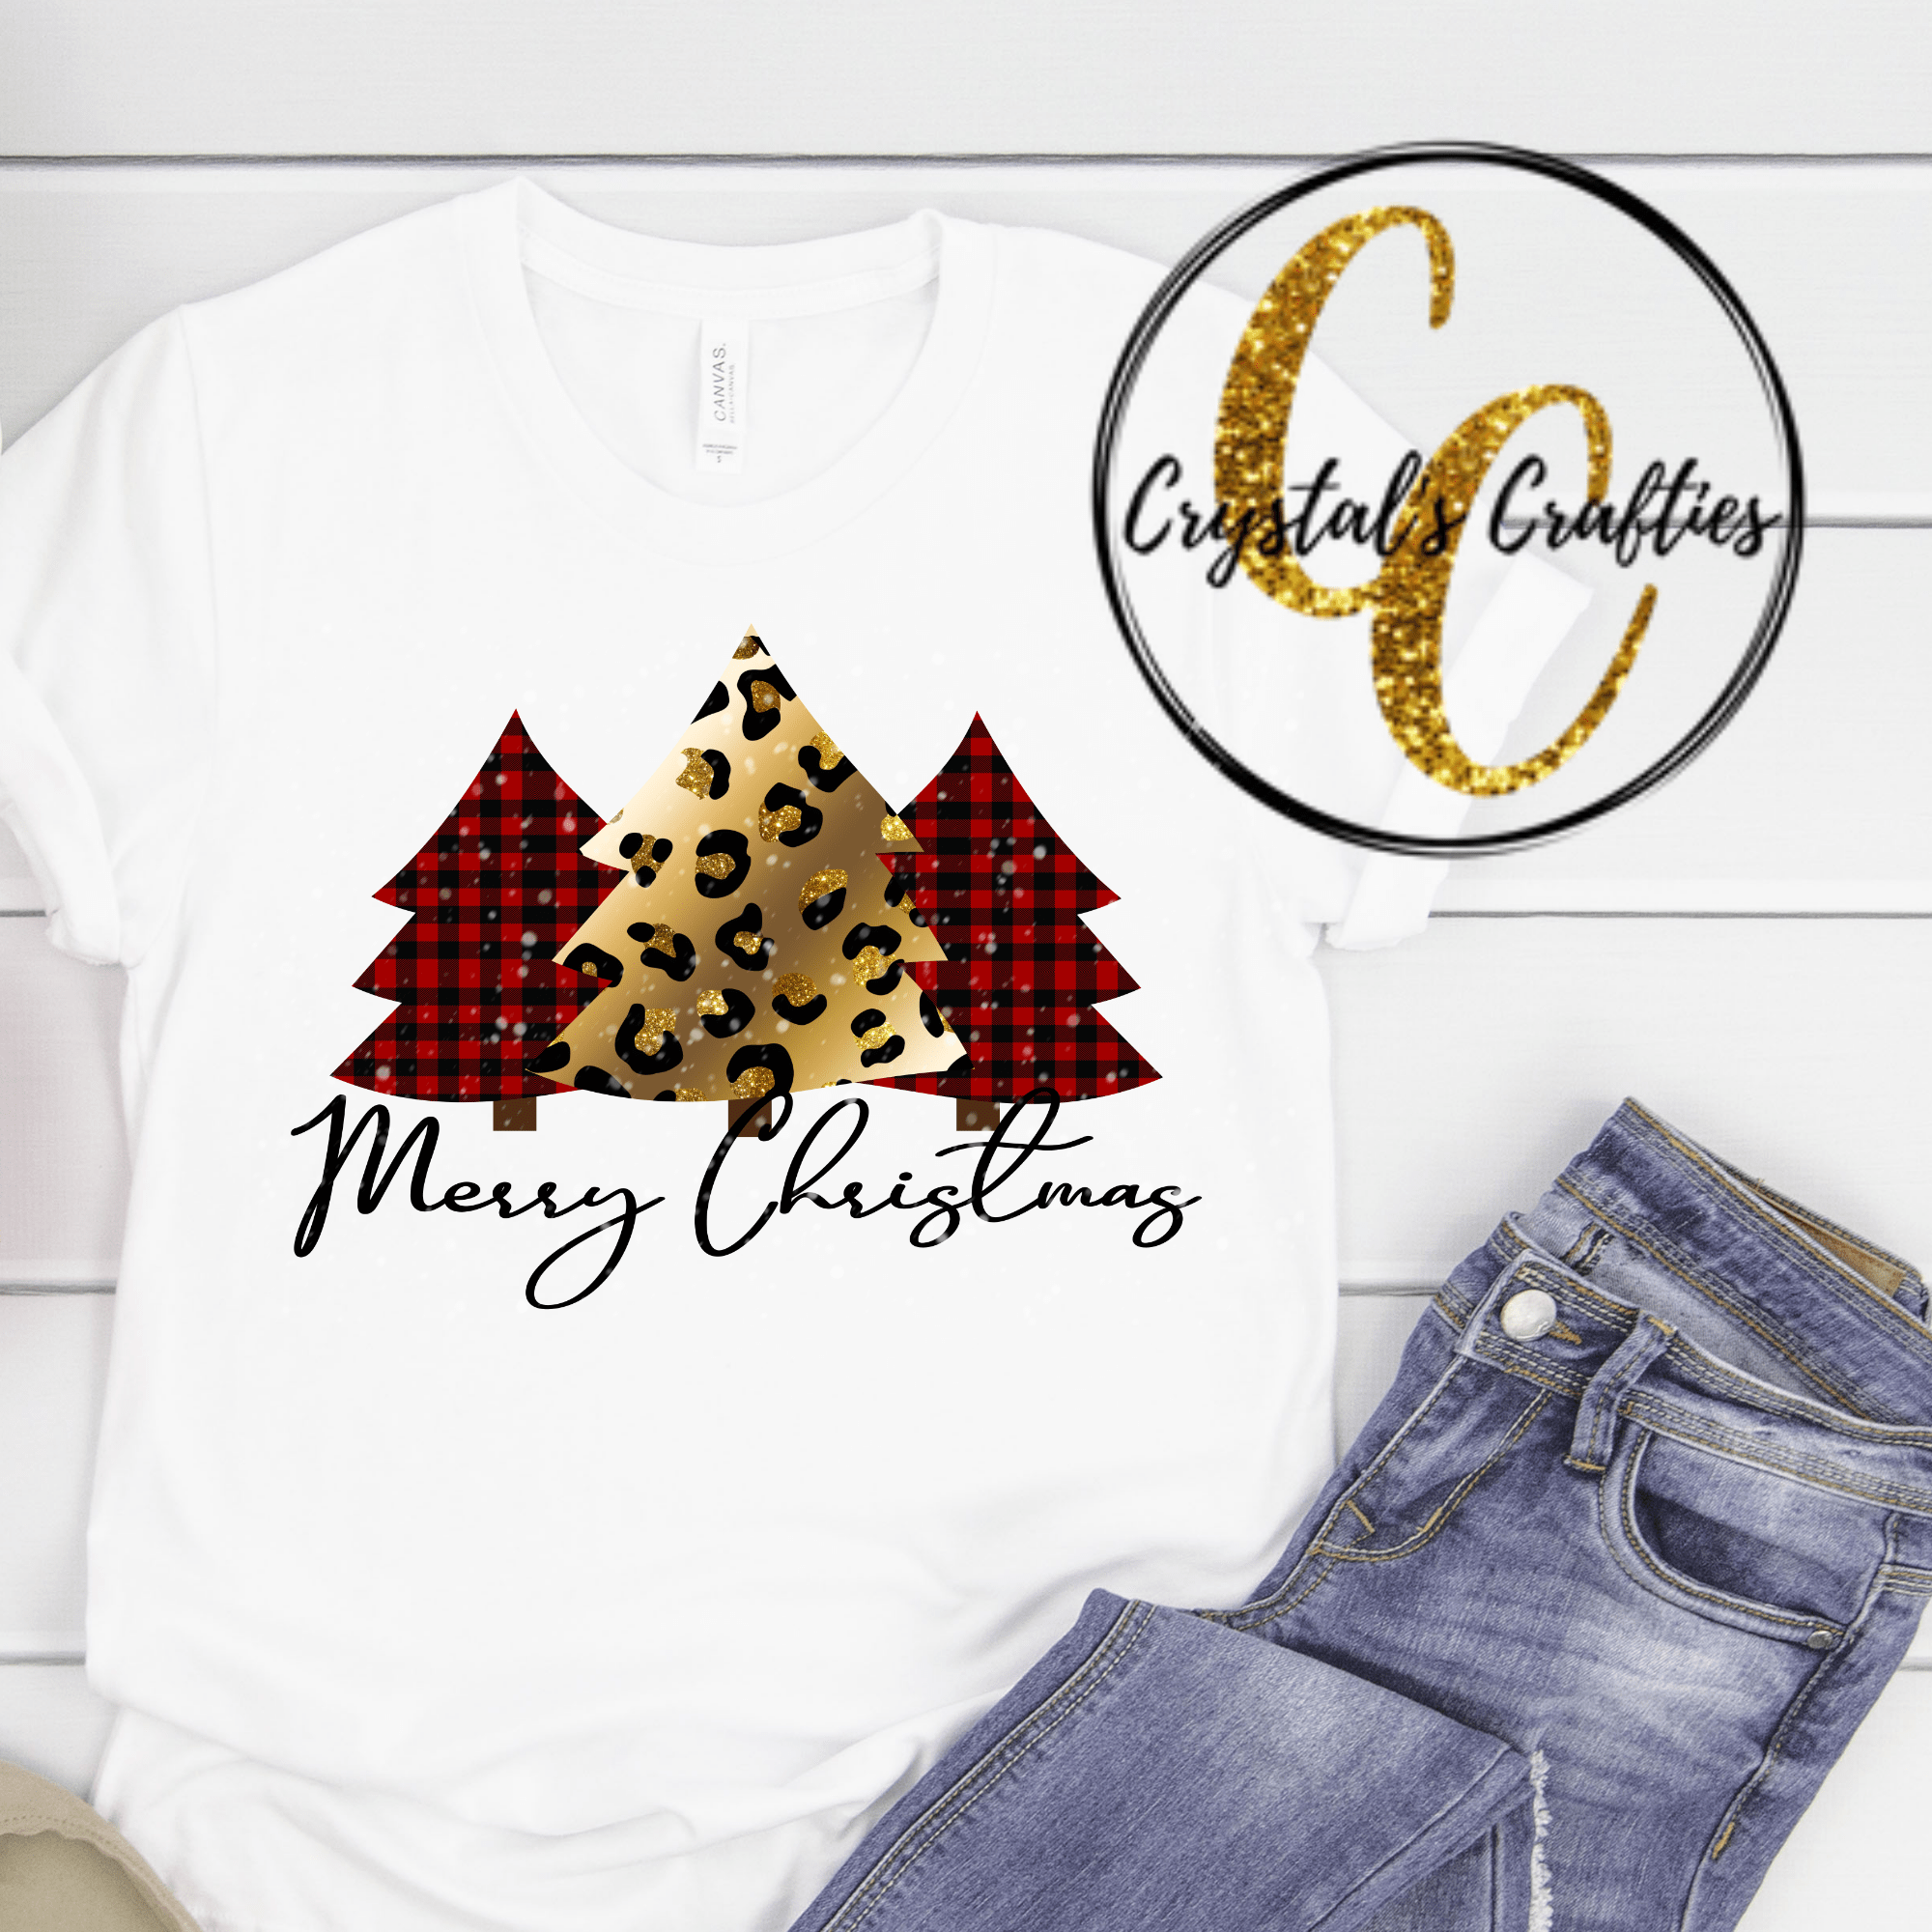 Merry Christmas SVG in 2020 Christmas svg